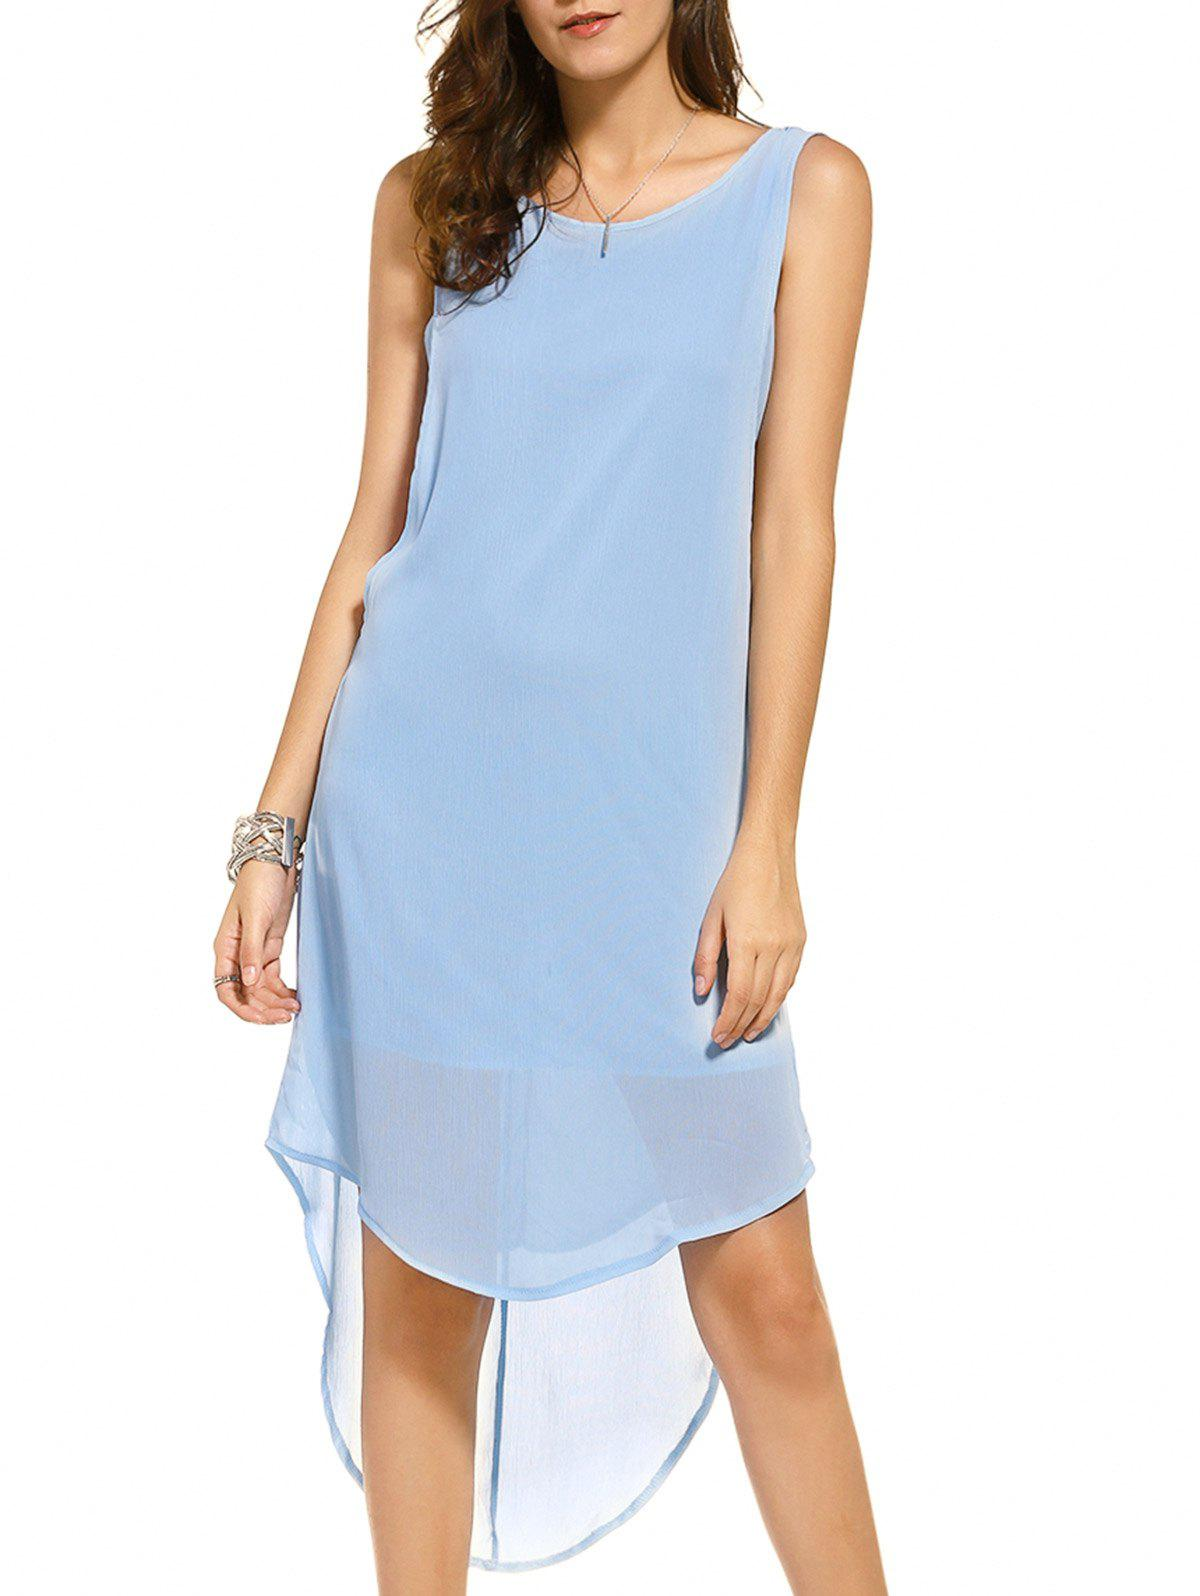 Casual Women's Scoop Neck Sleeveless High Low Backless Dress